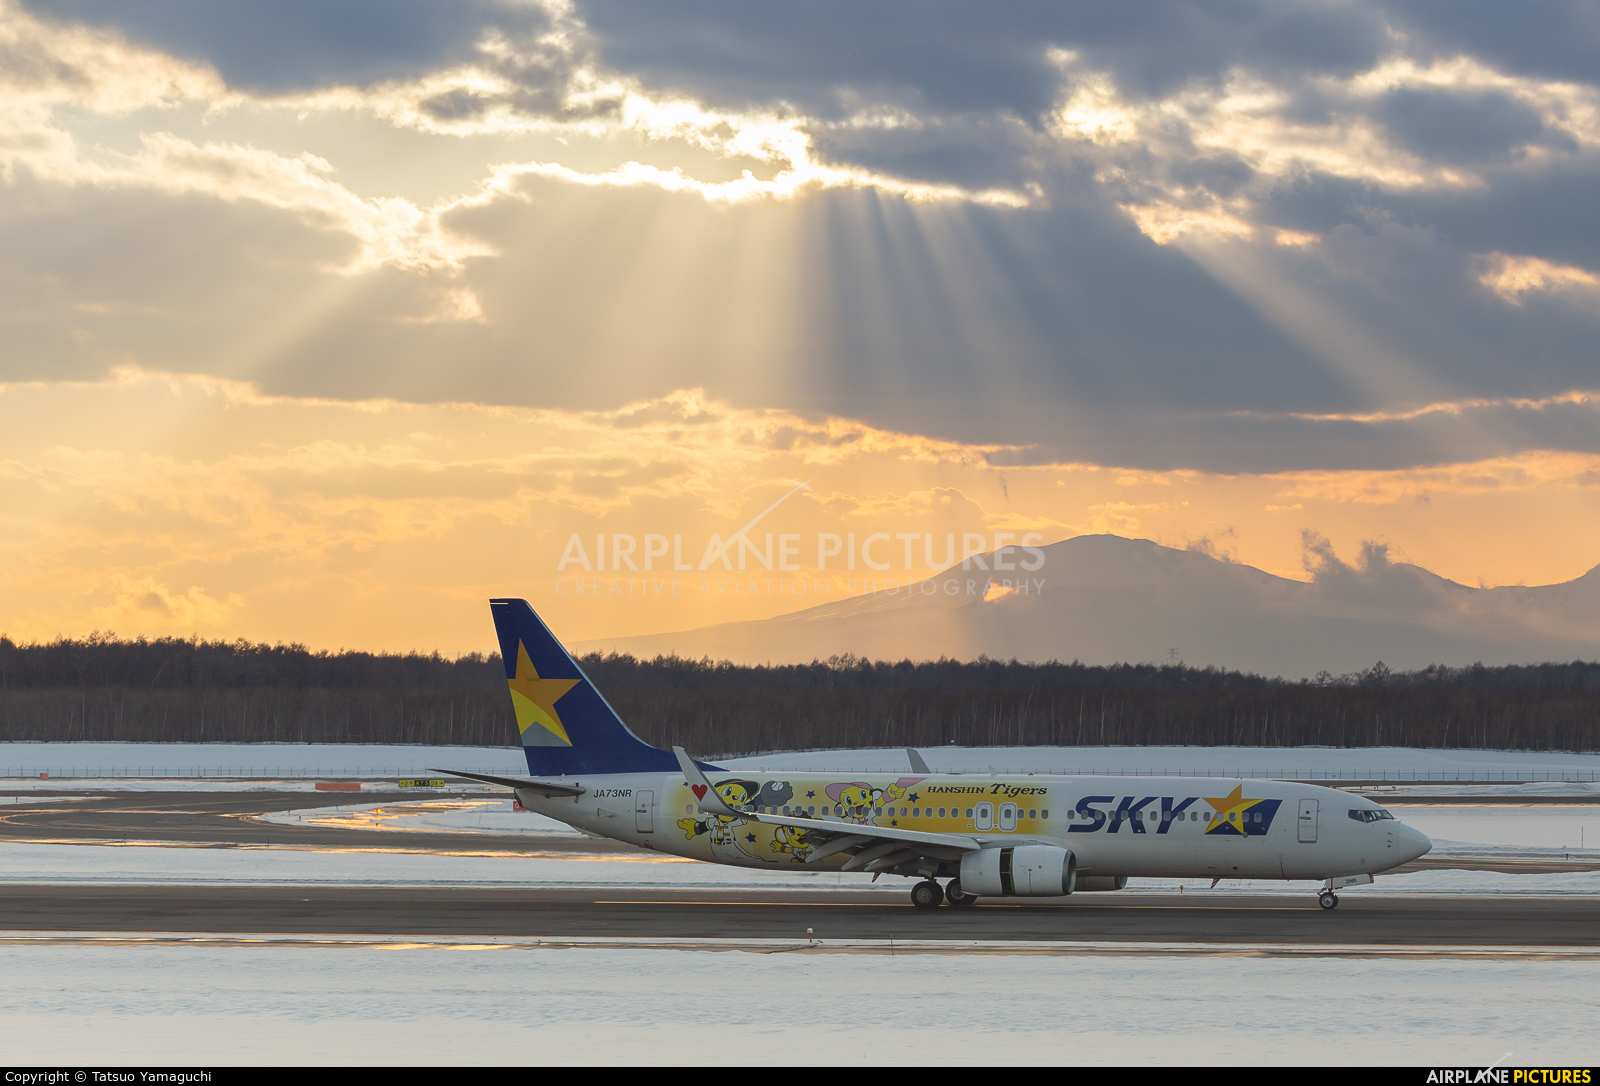 Skymark Airlines JA73NR aircraft at New Chitose